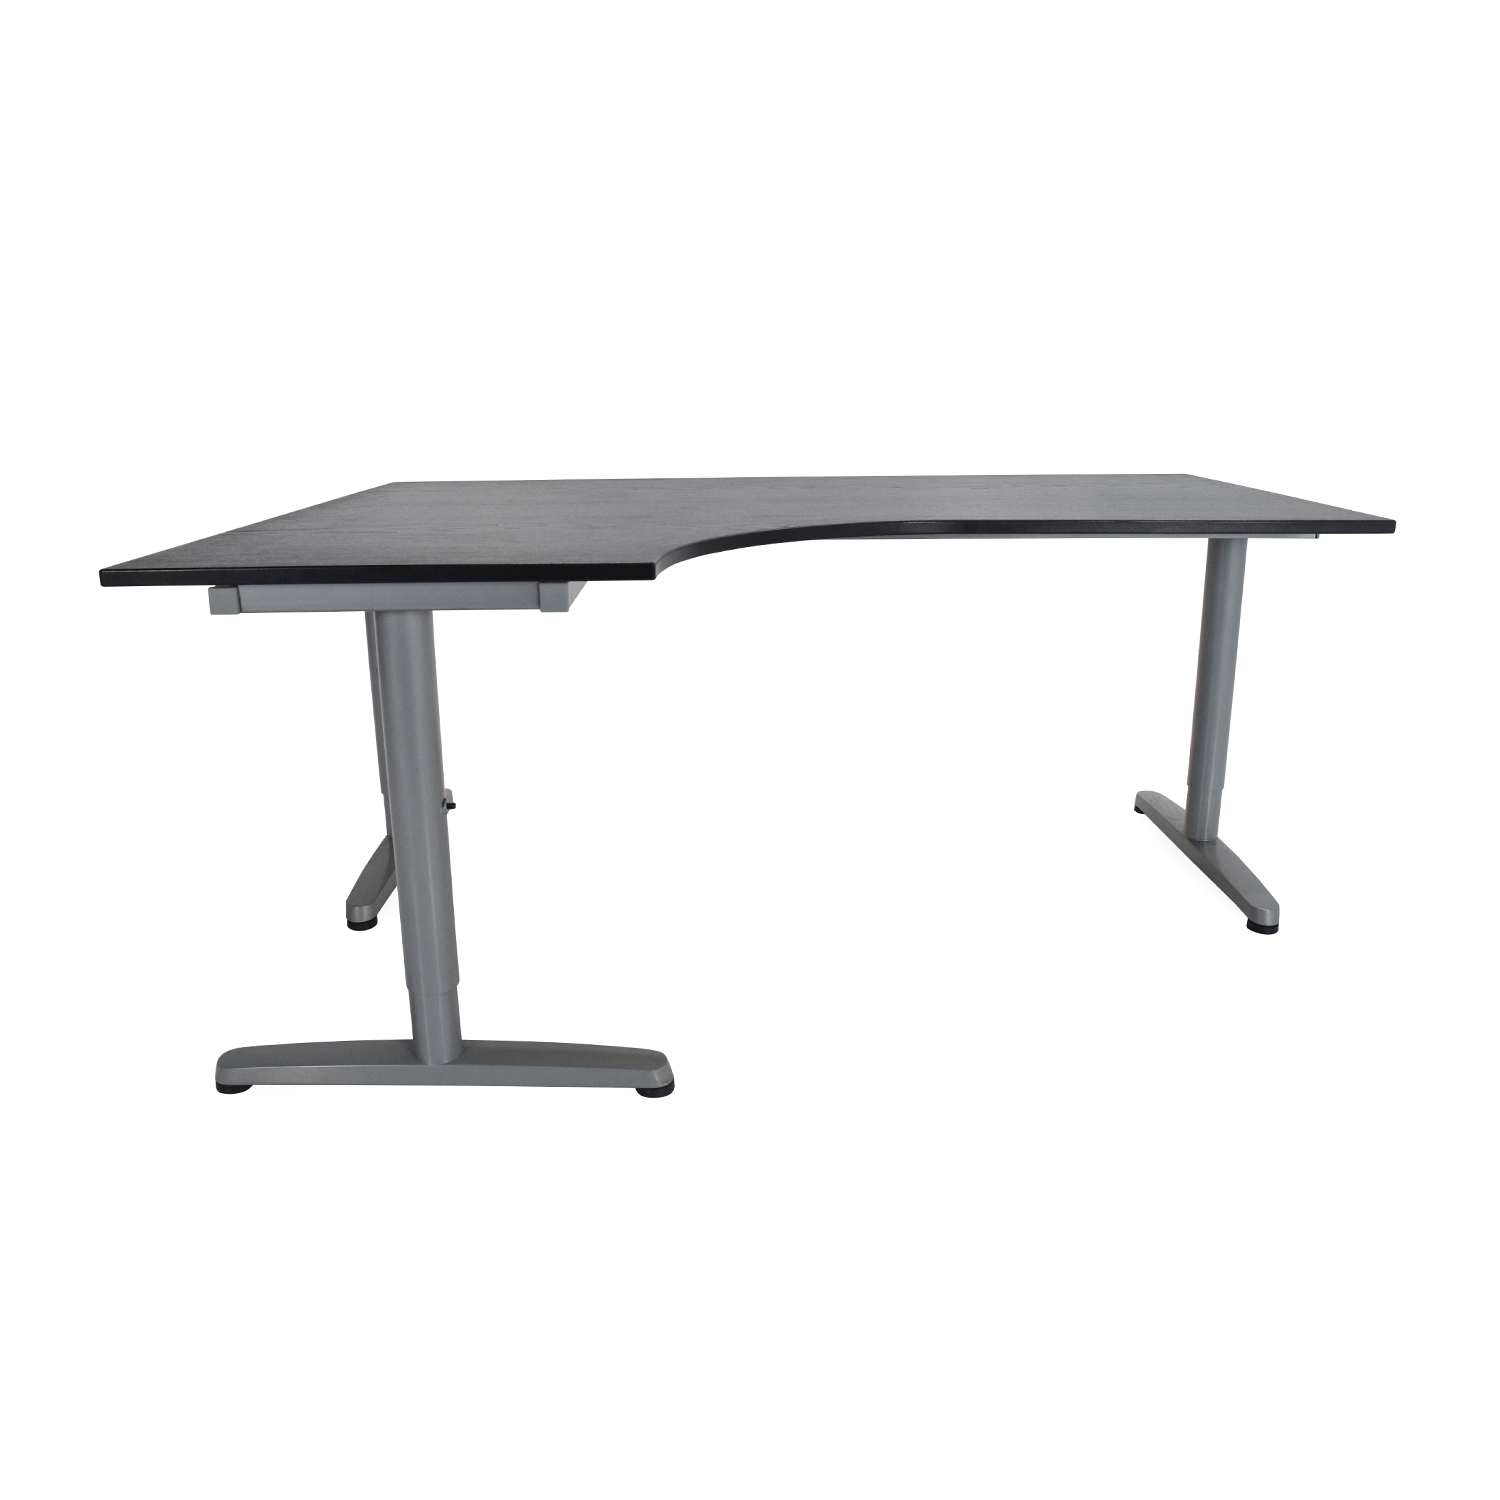 new product 01d54 e8afe 85% OFF - IKEA Galant Corner Desk / Tables